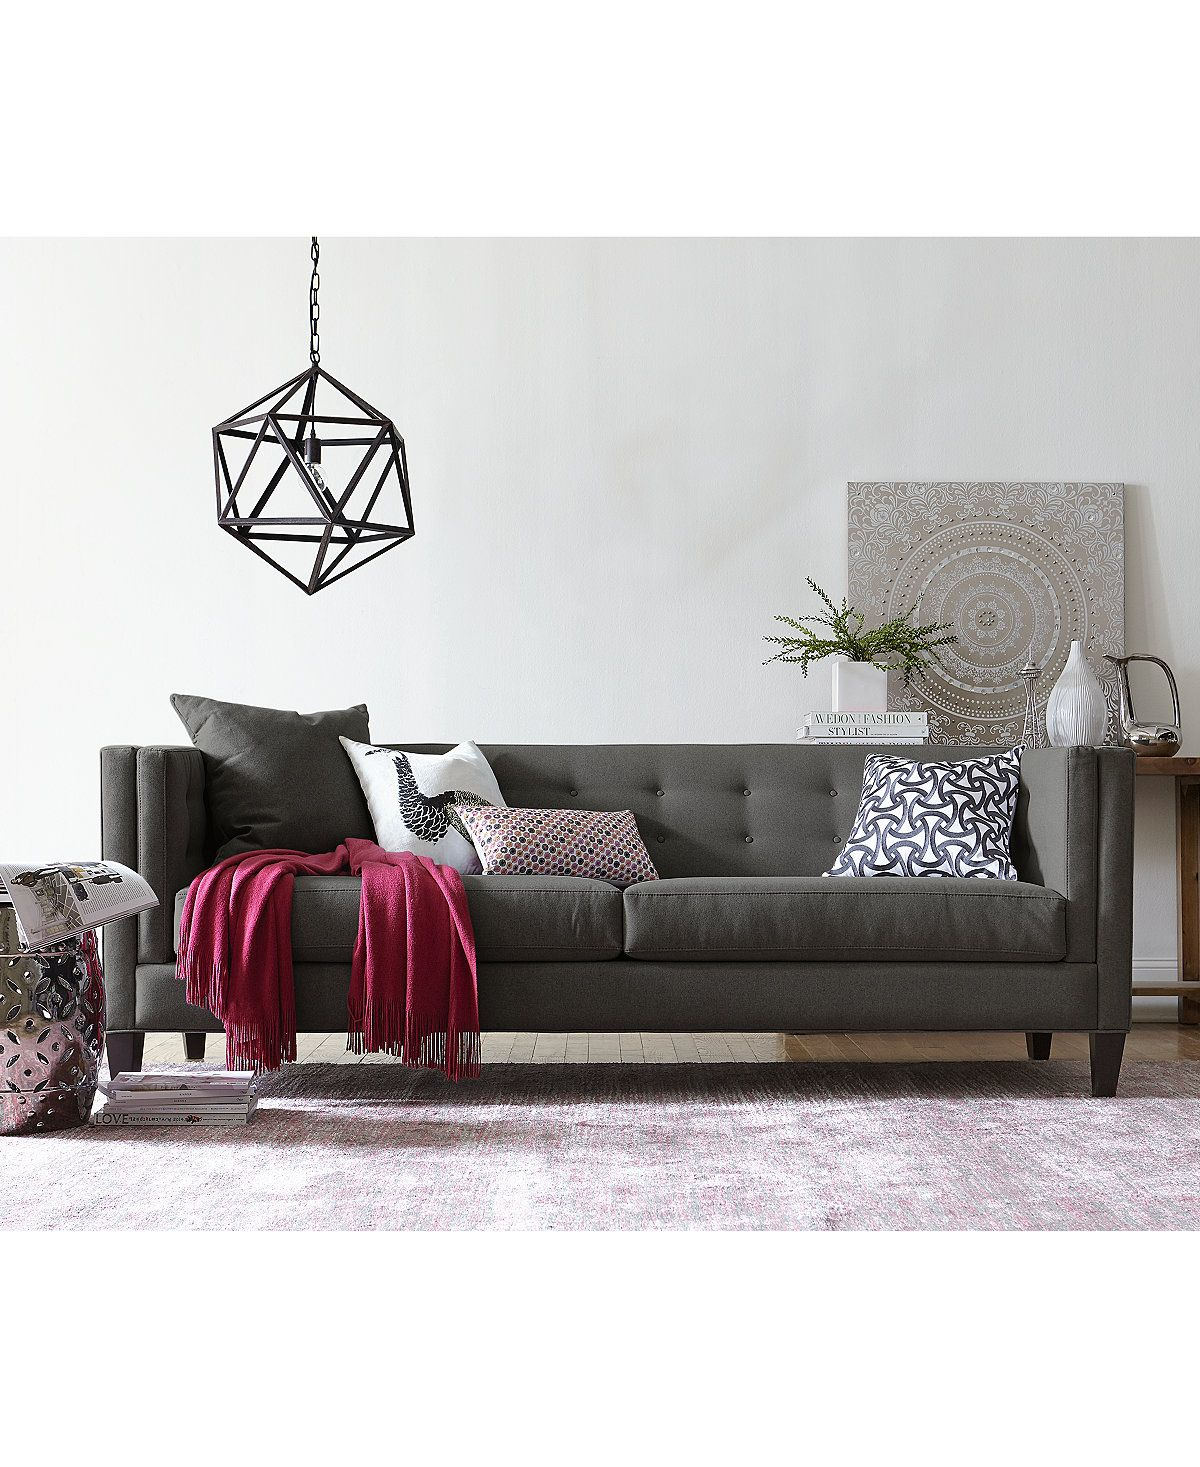 Macys Furniture Nyc: Pin On Couch